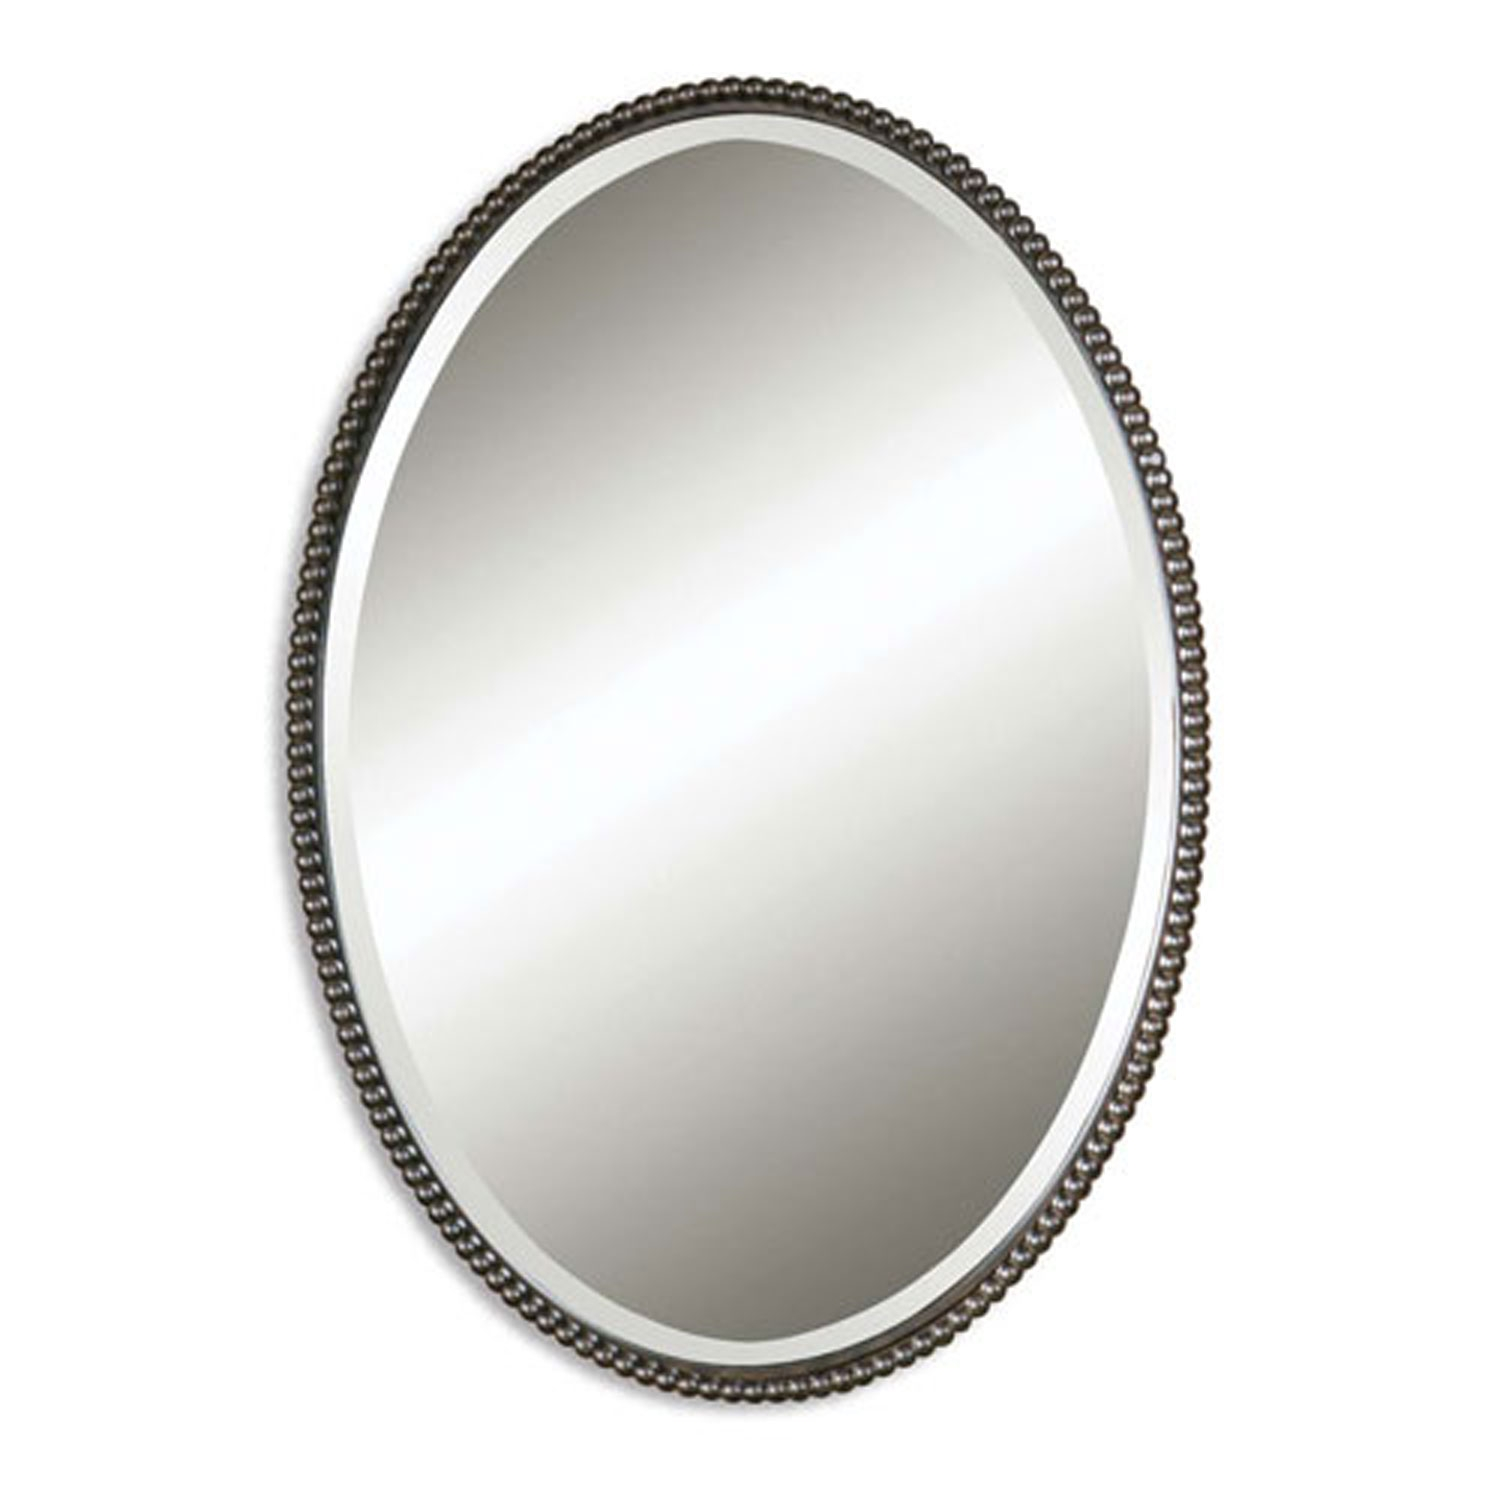 Oval Wall Mirrors 270 Kitchen Bathroom Frameless Vanity Options With Regard To White Oval Mirrors (Image 6 of 15)